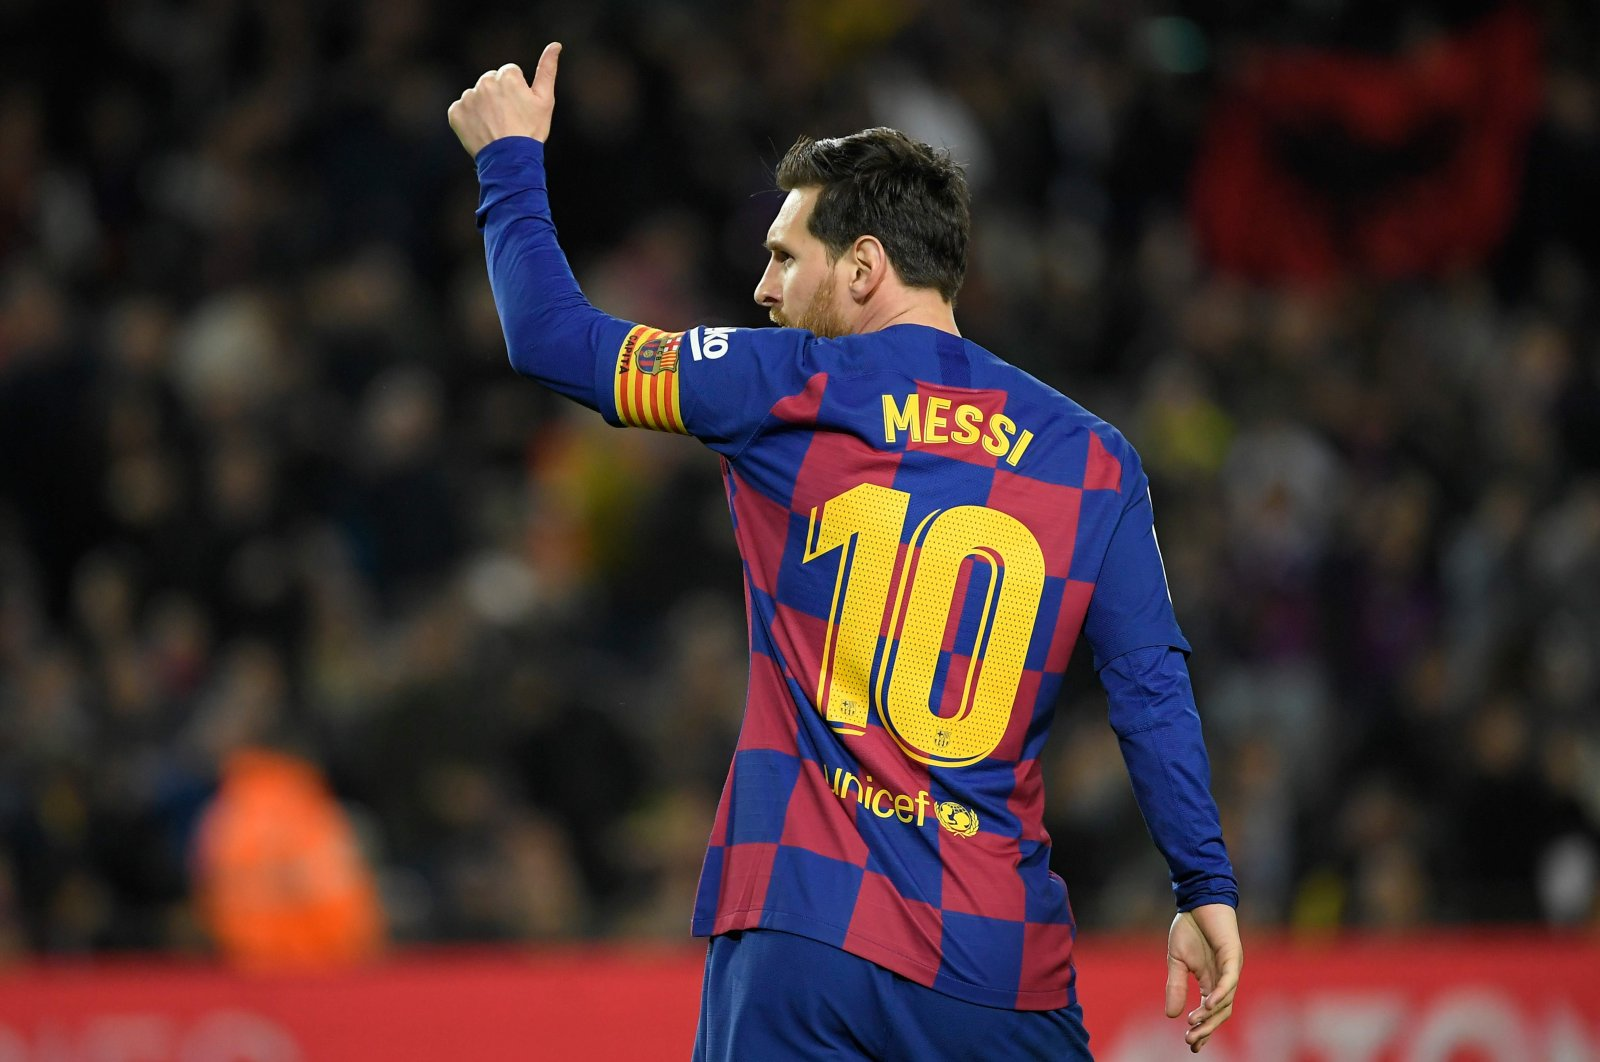 Barcelona's Lionel Messi celebrates after scoring a goal during a La Liga match against Real Sociedad at the Camp Nou stadium in Barcelona, Spain, March 7, 2020. (AFP Photo)